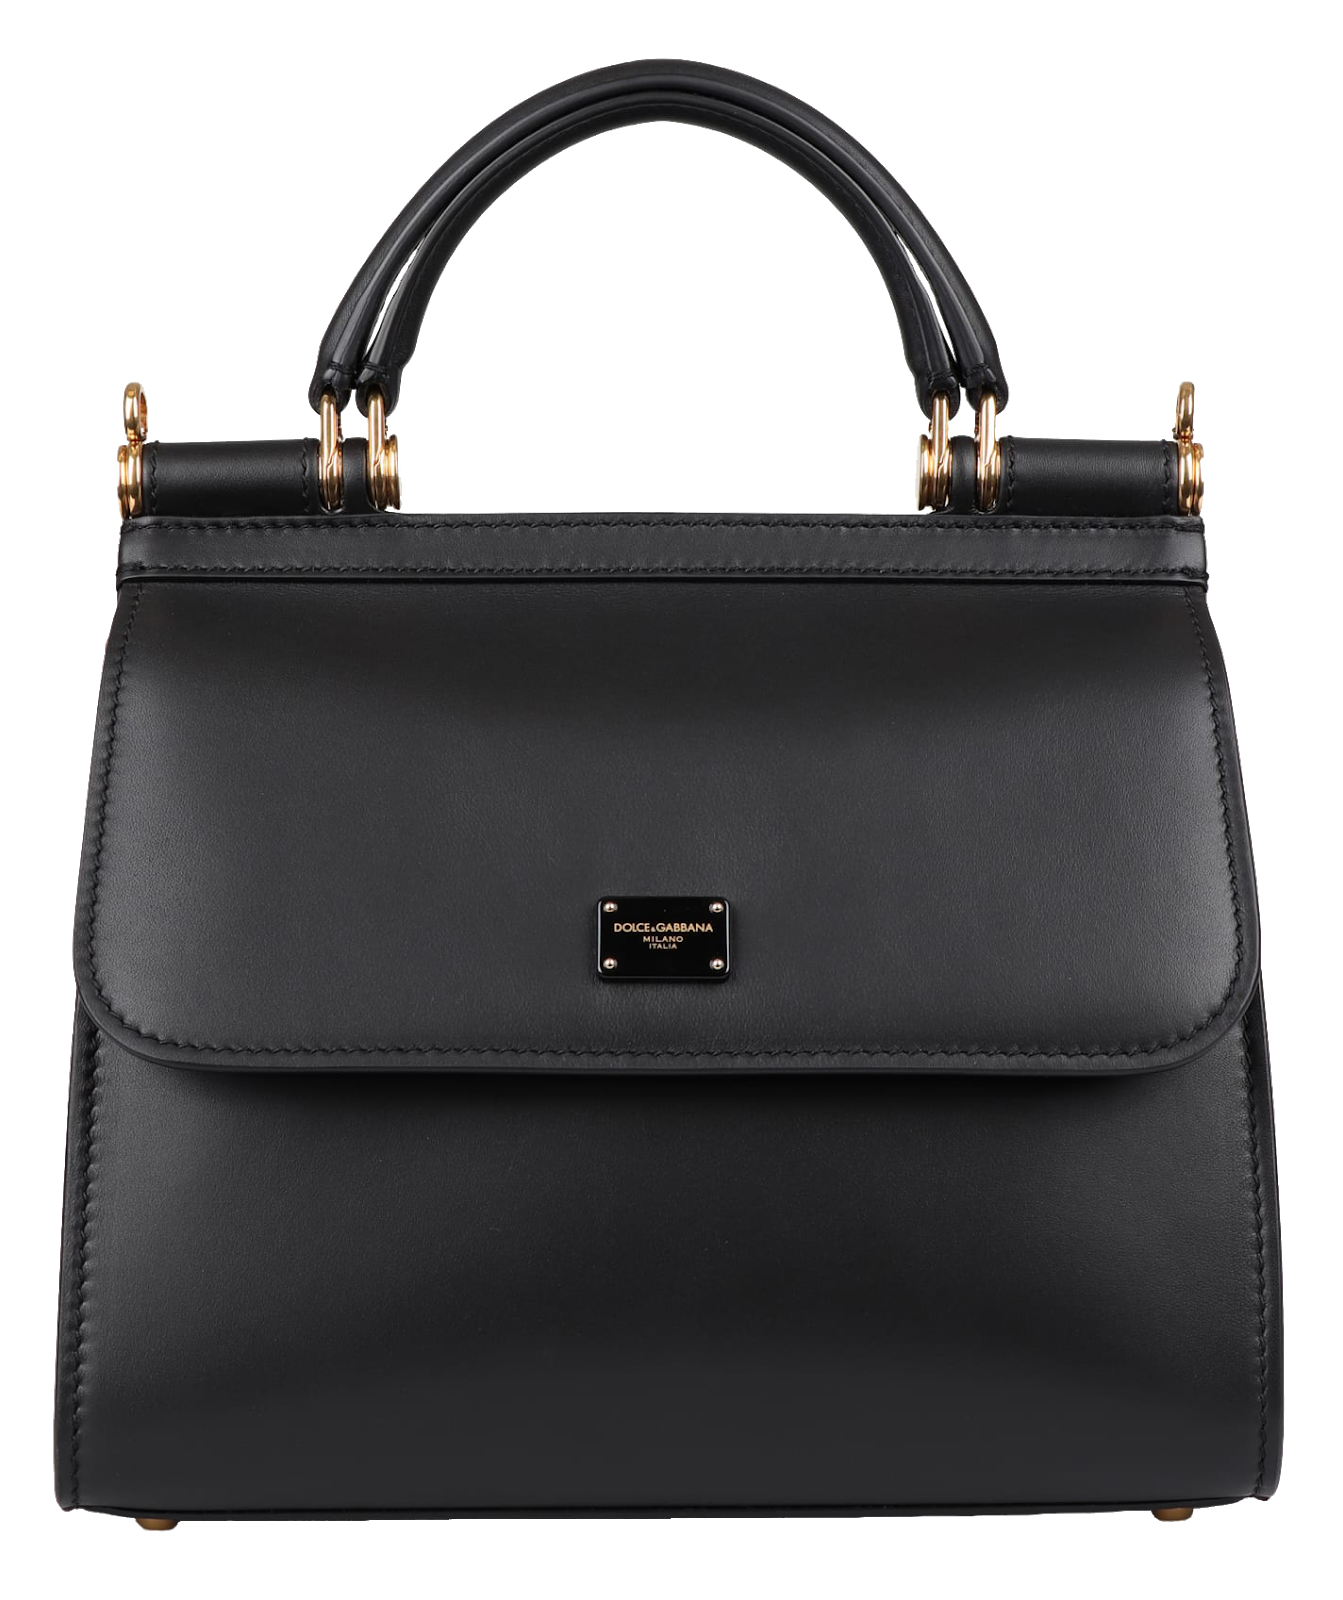 Dolce & Gabbana Sicily 58 bag | wish list, shopping, bag, accessories, Italy, Sicily, 60s, vintage, retro | Allegory of Vanity